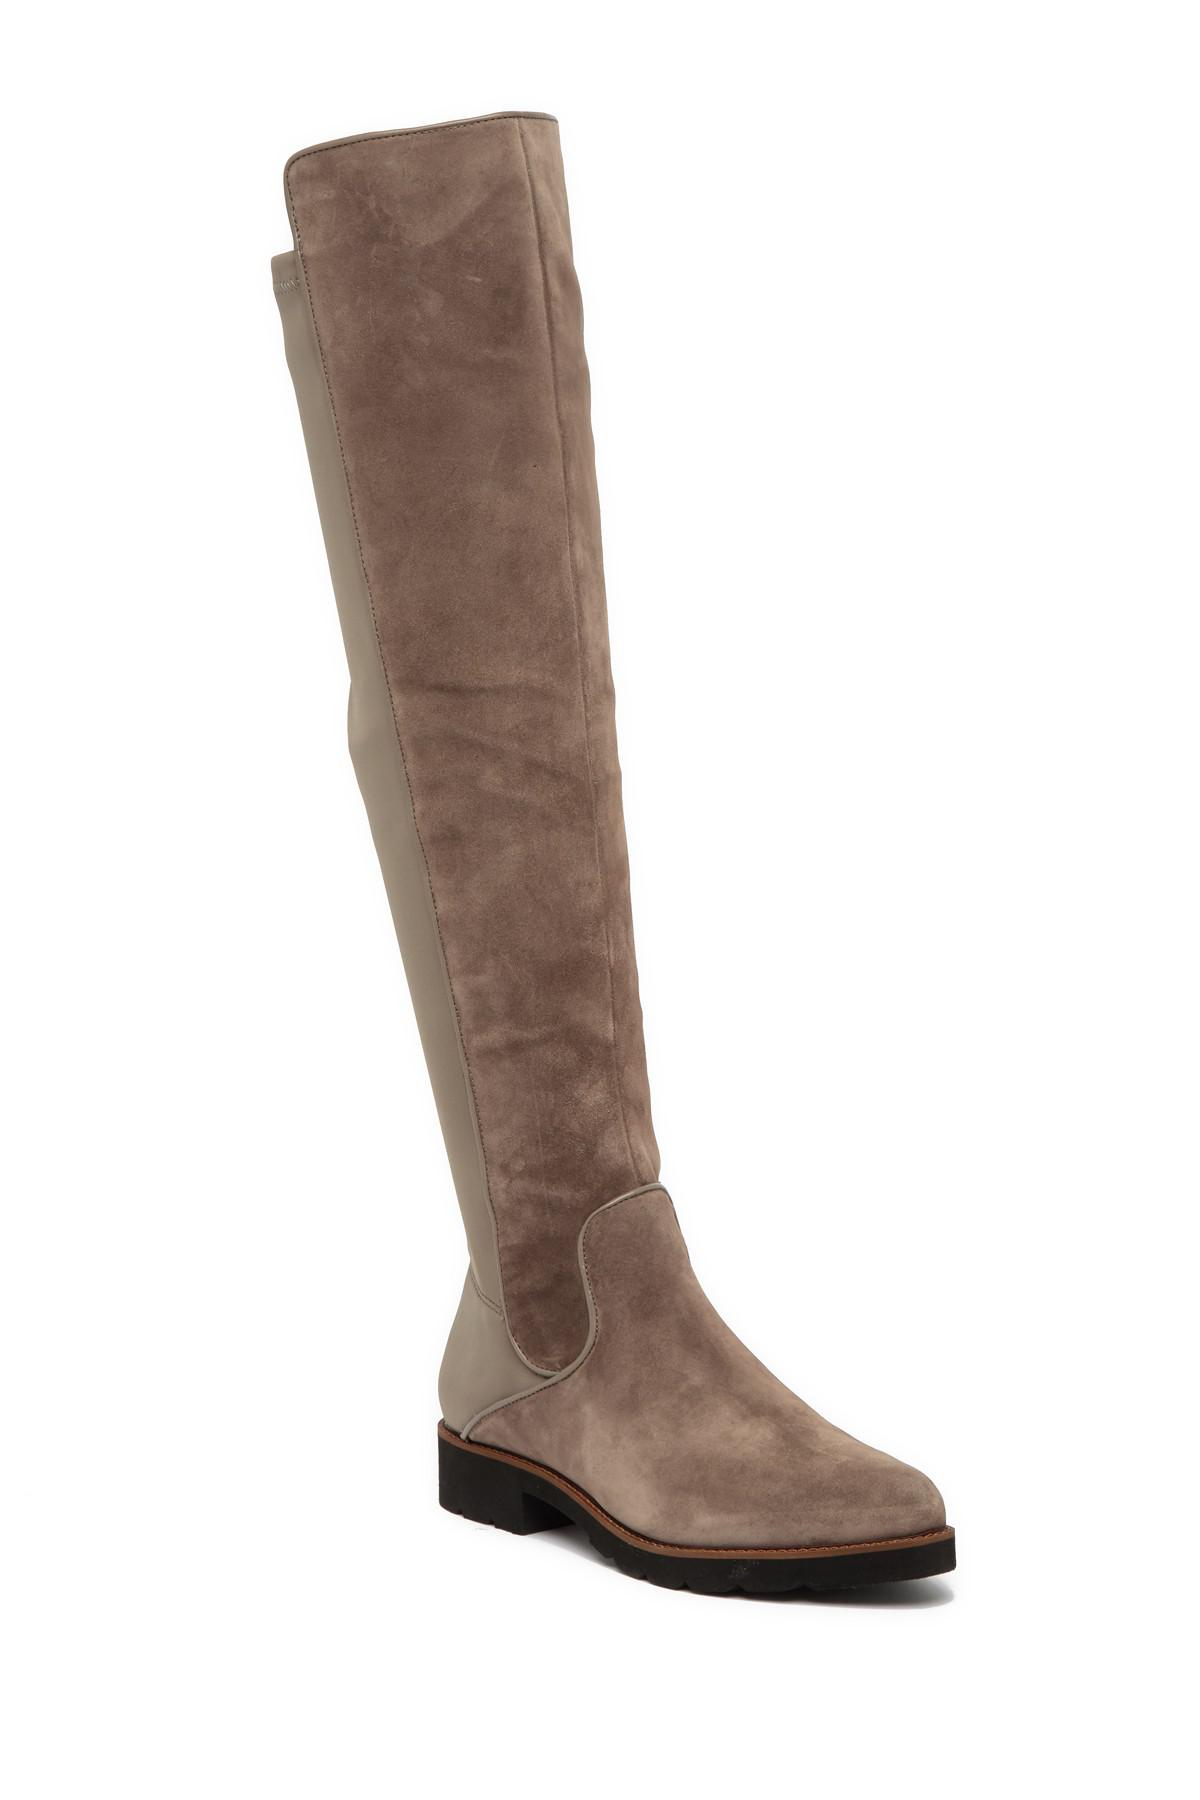 26ae1a8a6aa Lyst - Franco Sarto Benner Leather Over-the-knee Boot in Brown